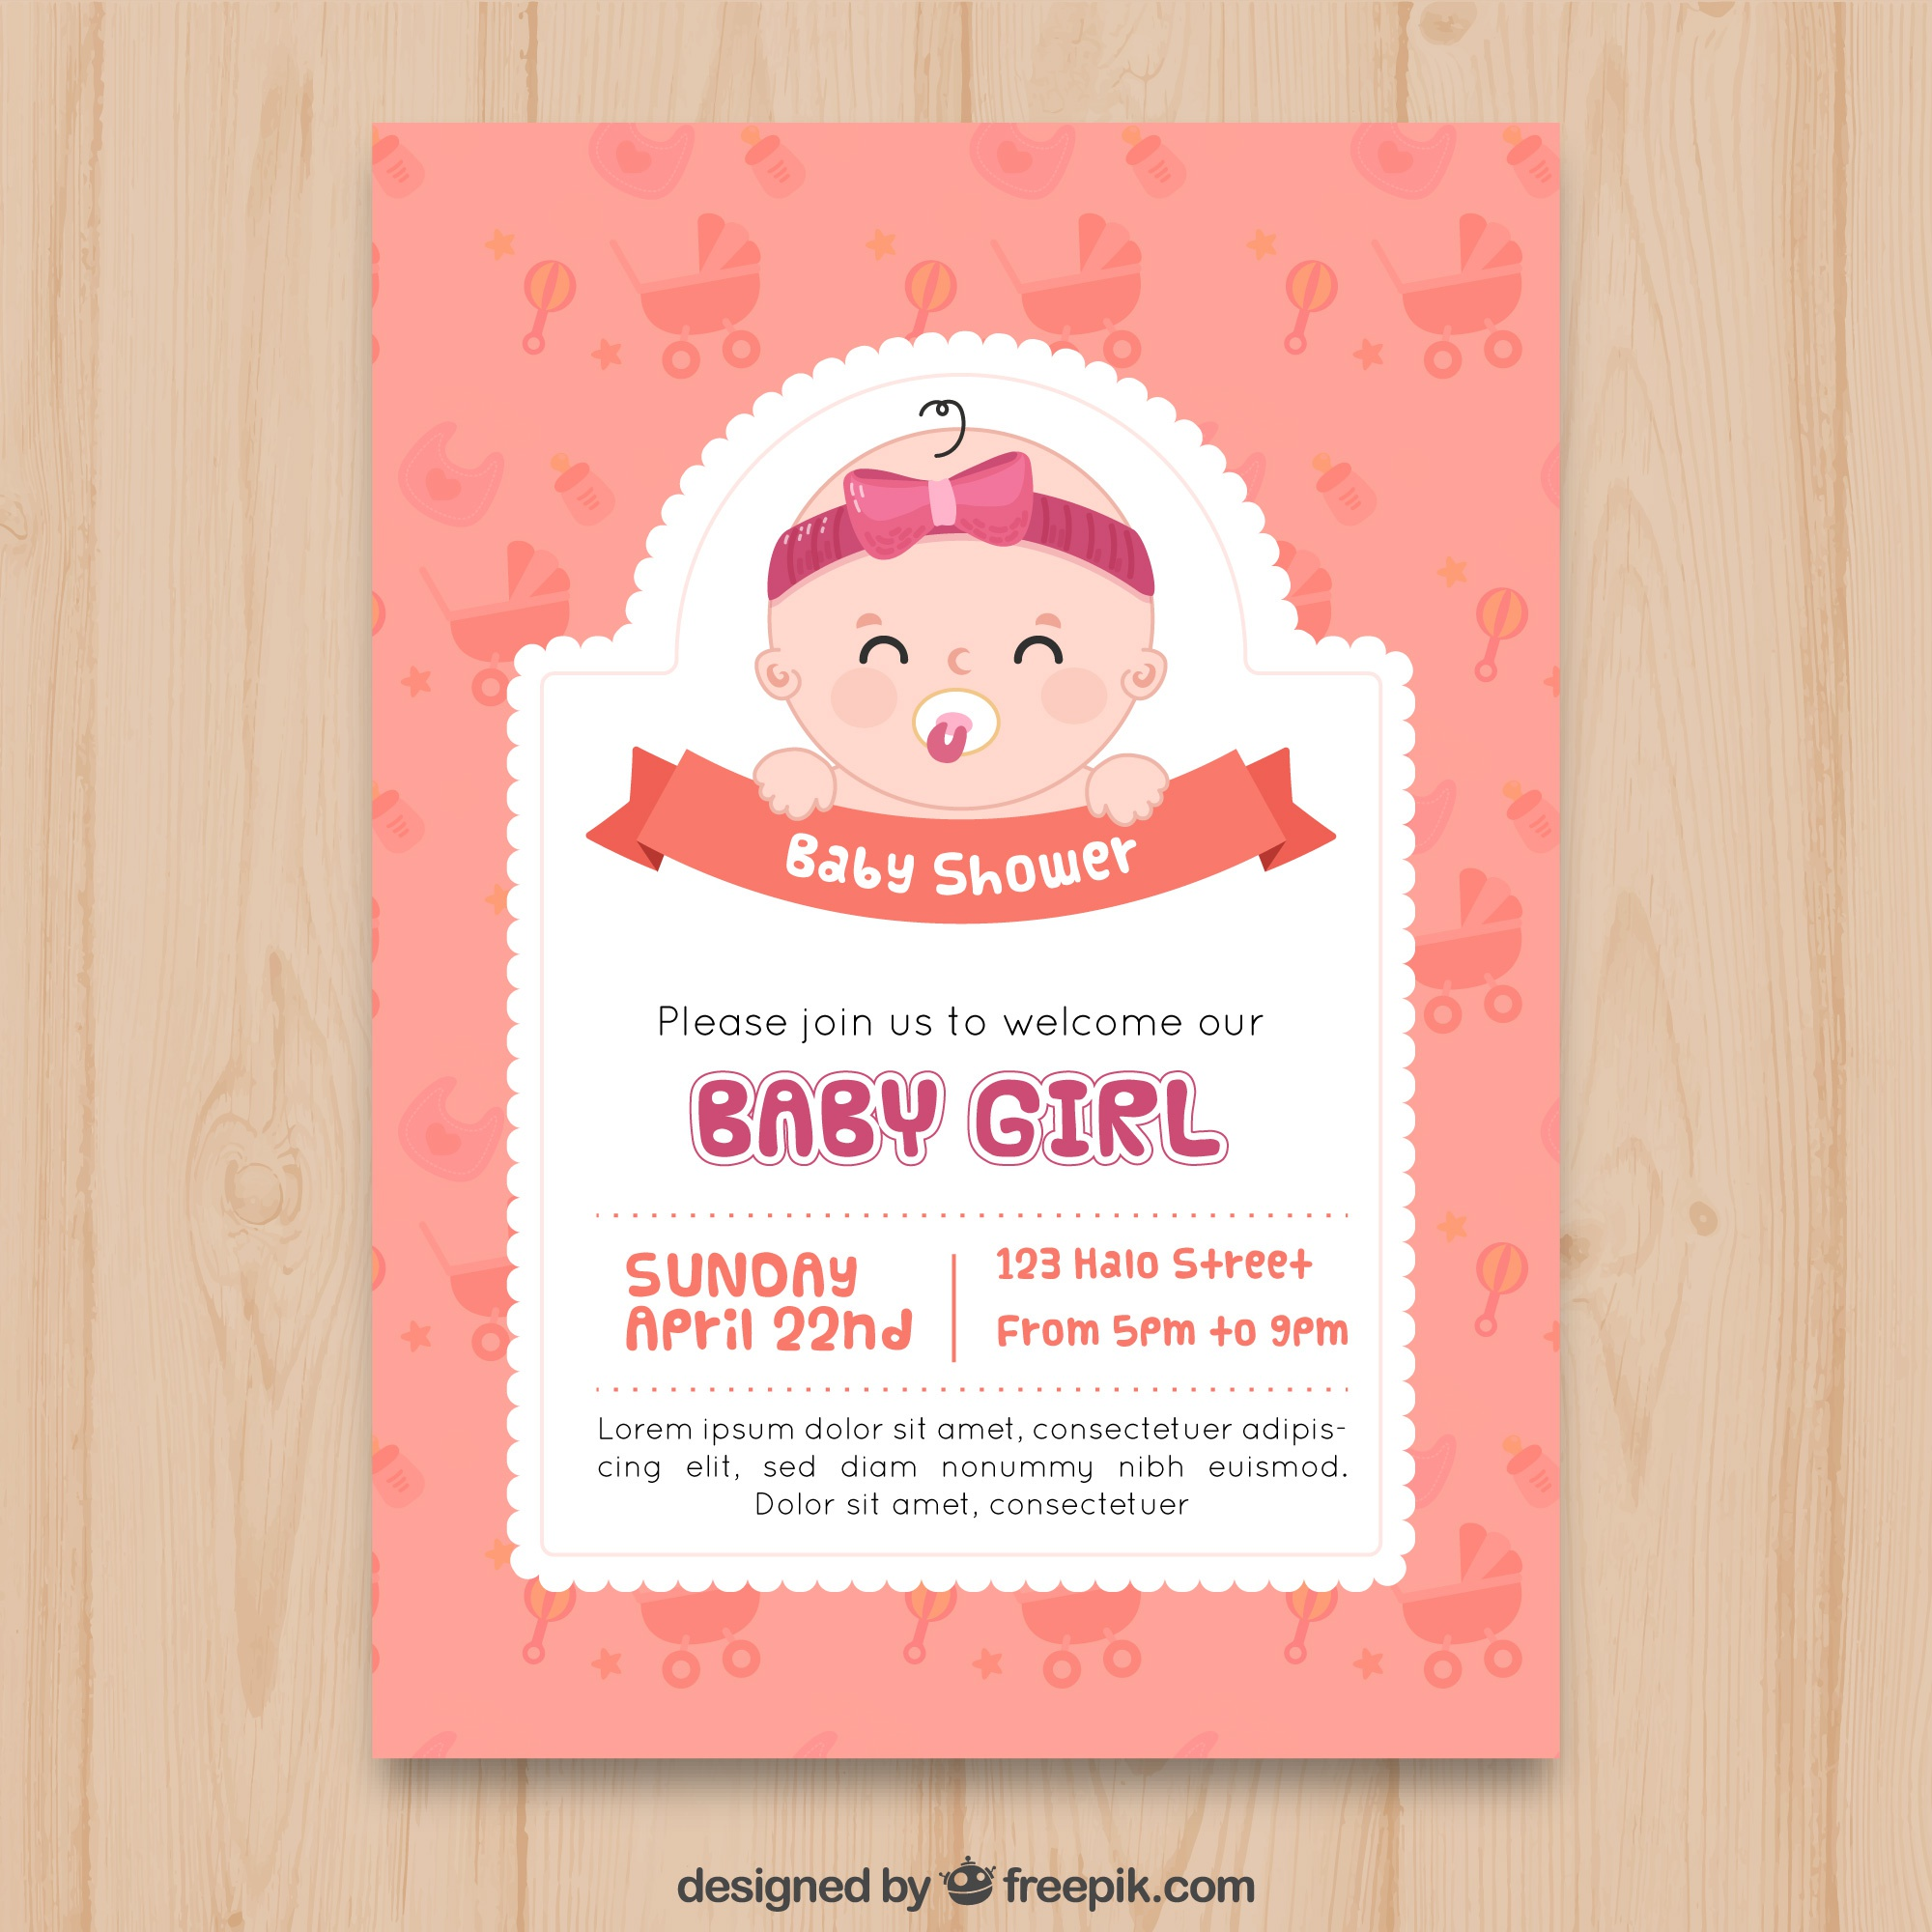 Baby shower invitation in hand drawn style